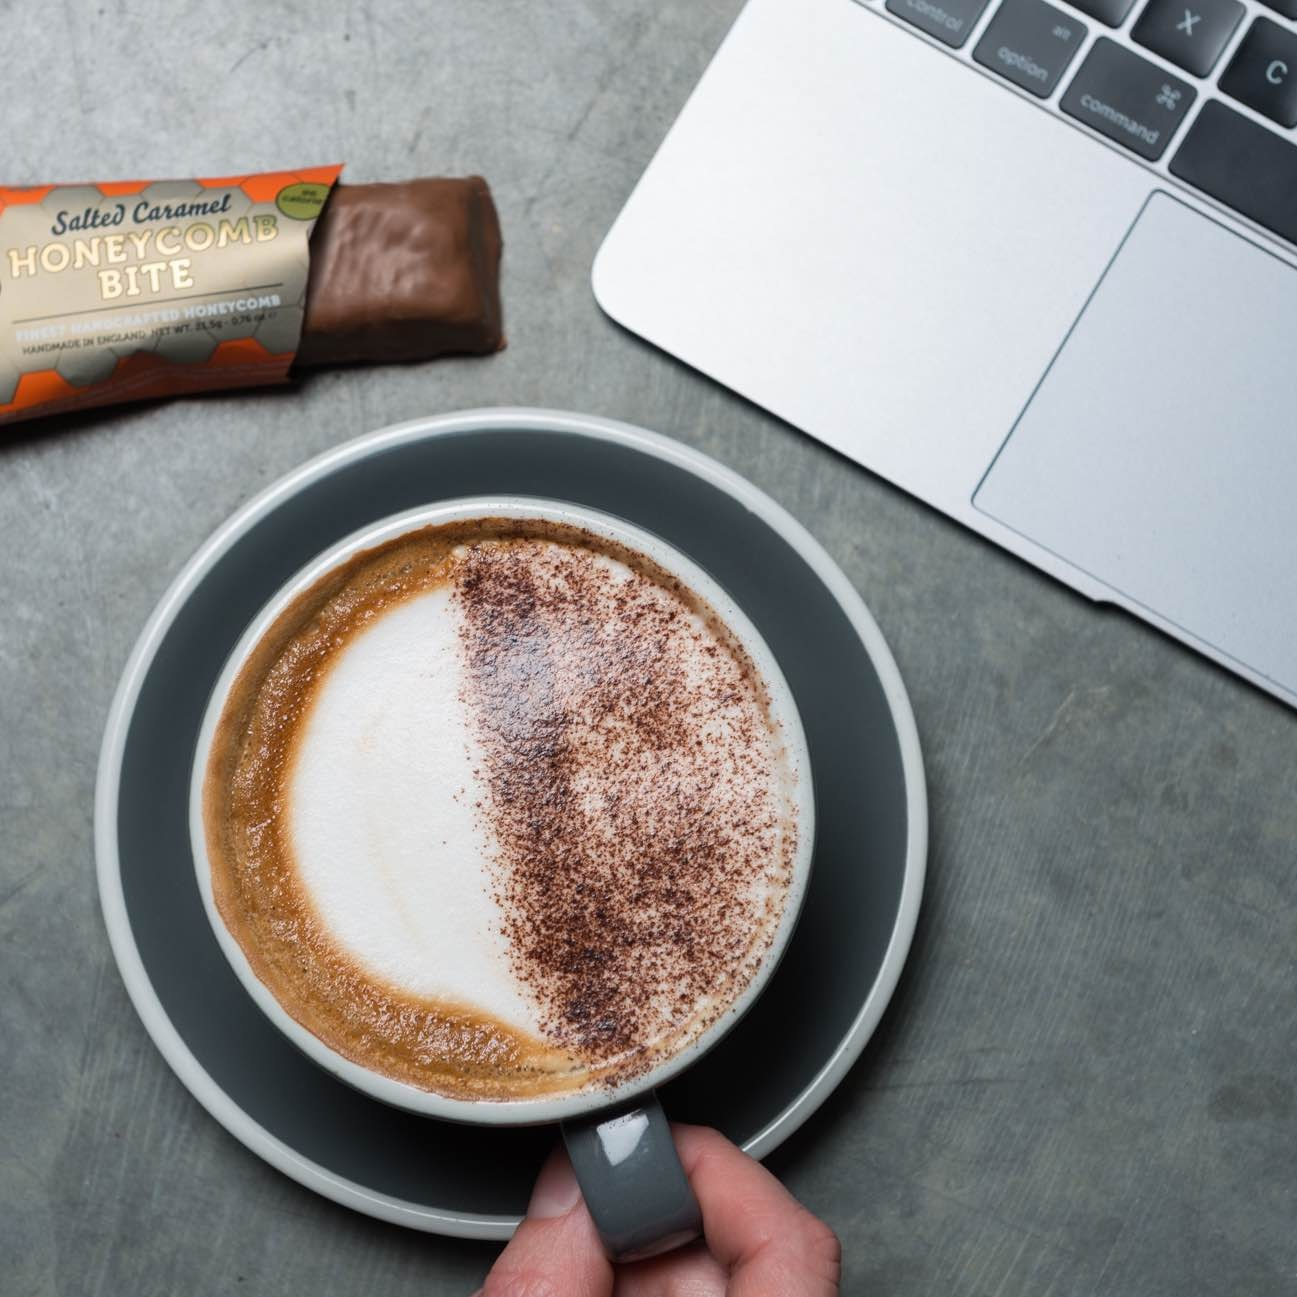 Mighty+Fine+Salted+Caramel+Honeycomb+Bar+Perfect+with+Coffee.jpg